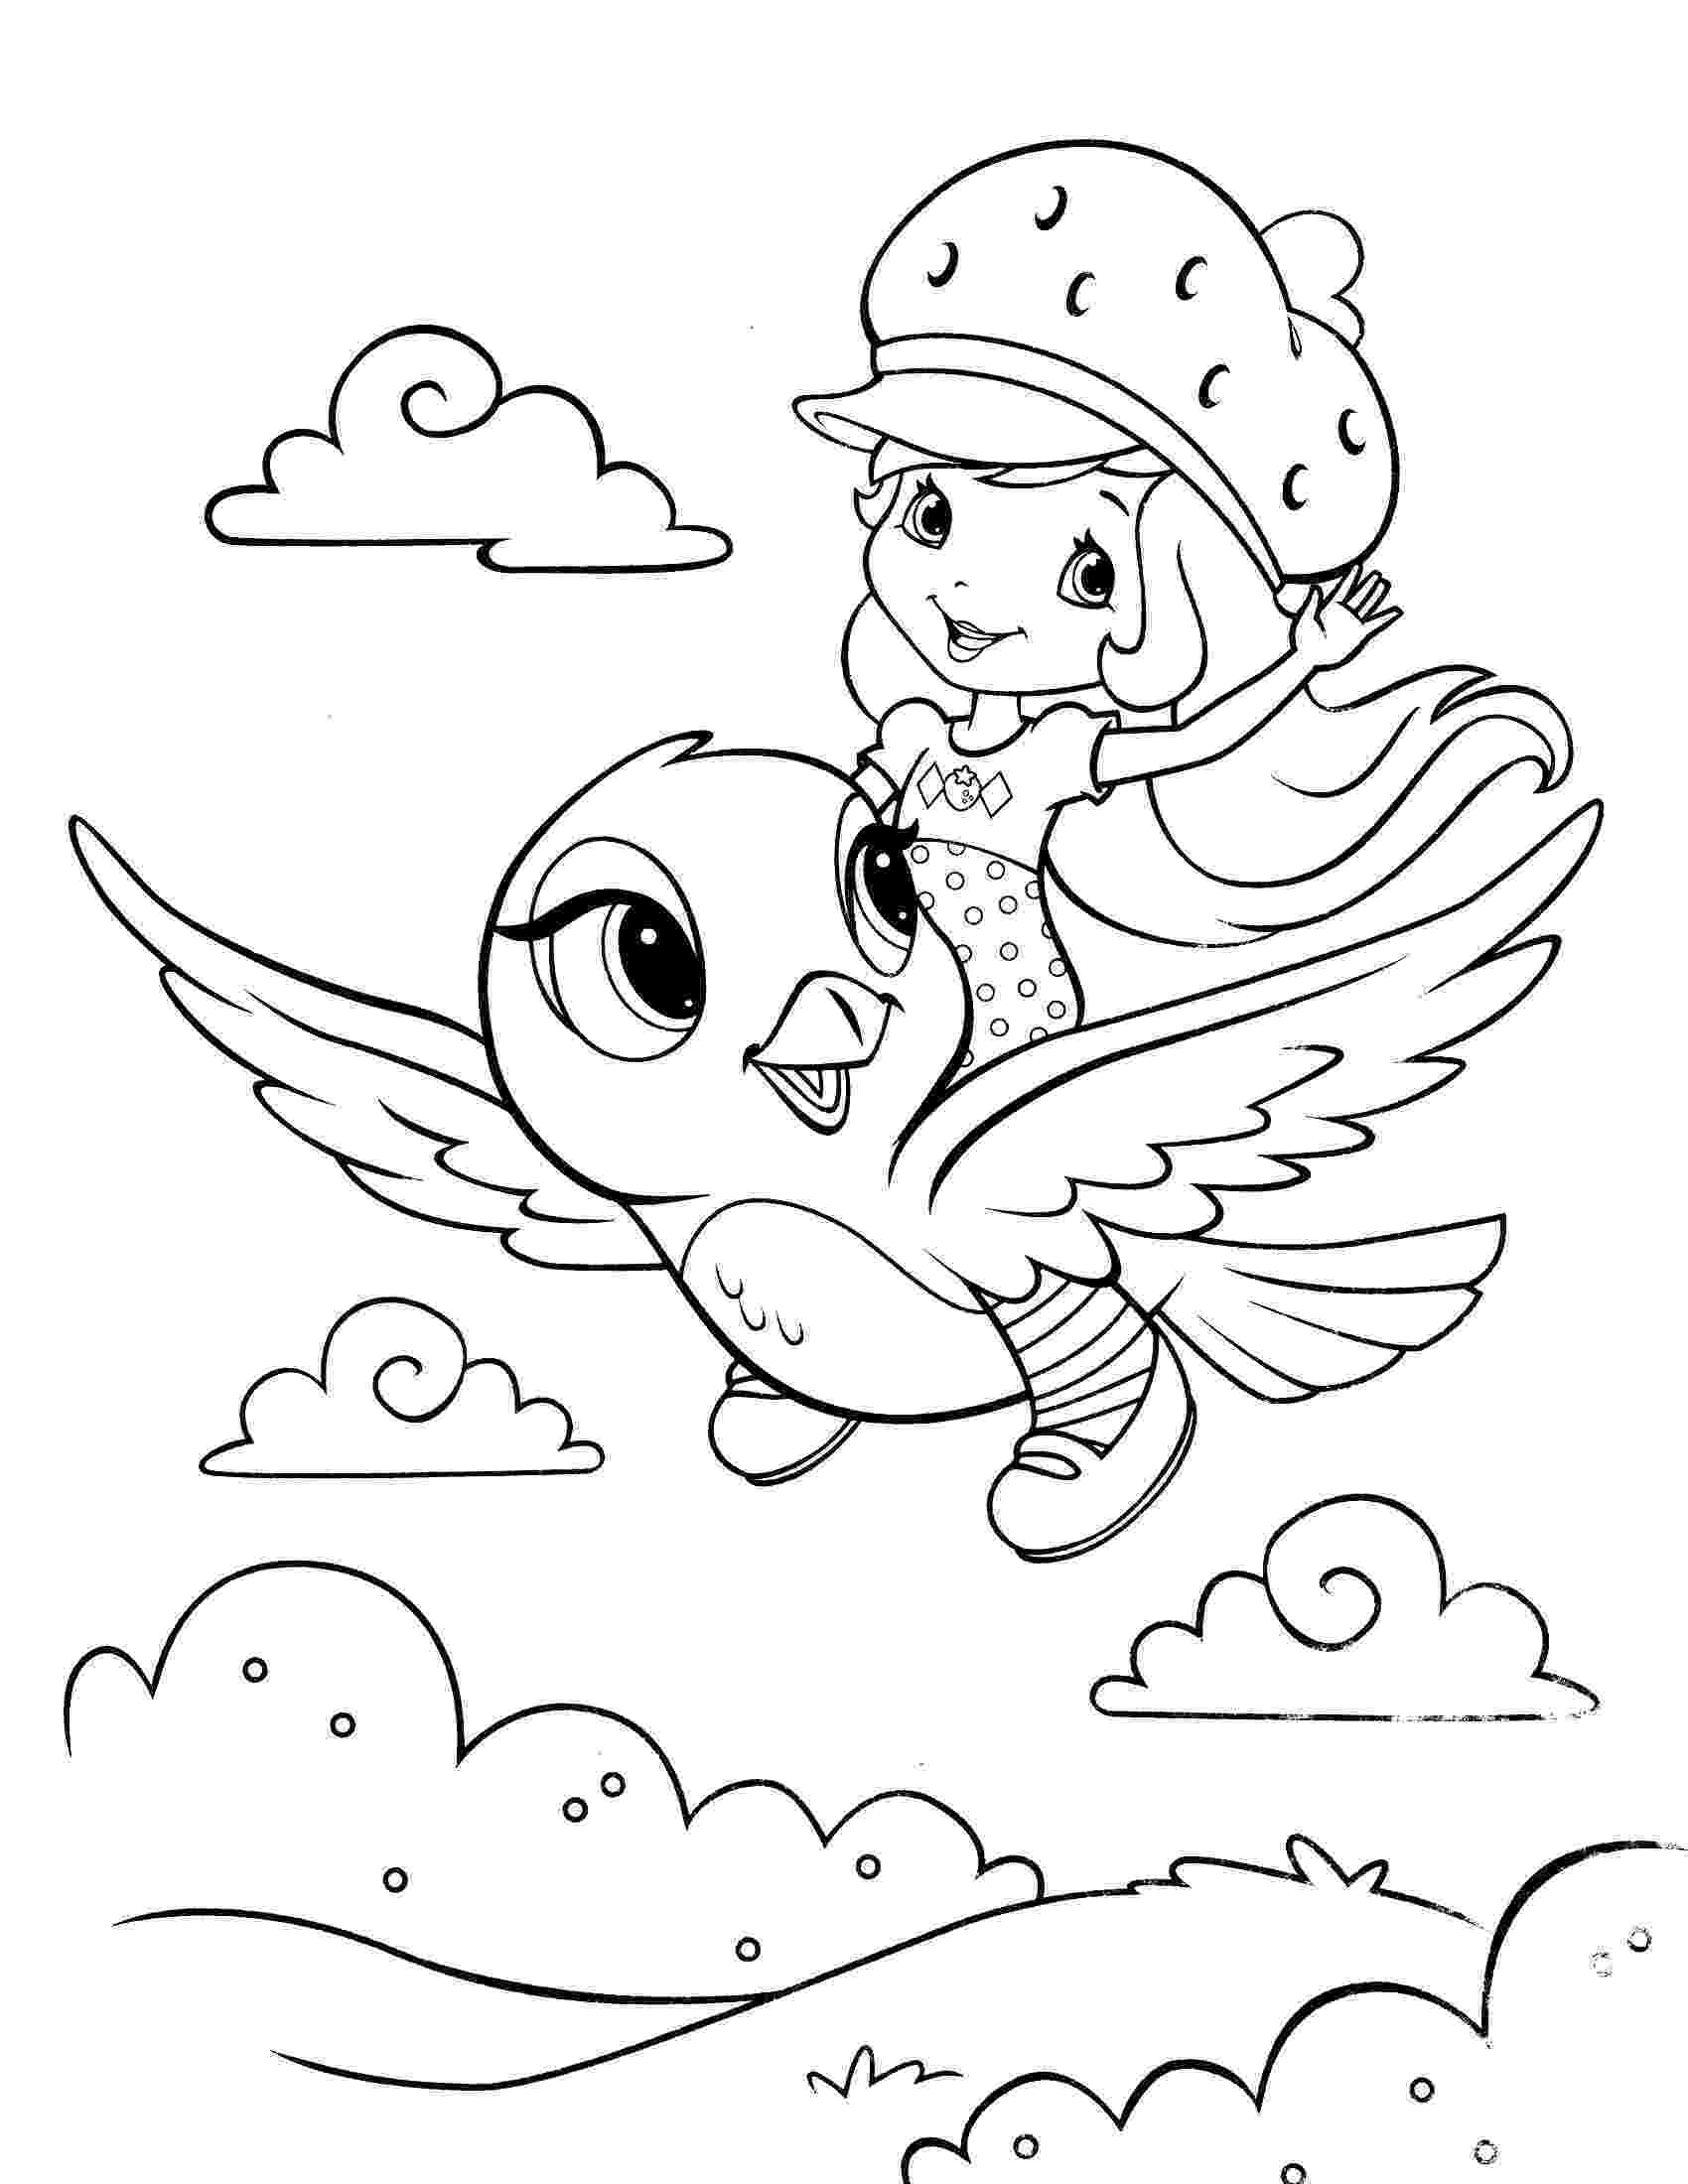 strawberry shortcake printable coloring pages strawberry shortcake with custard and butterfly coloring strawberry shortcake pages coloring printable